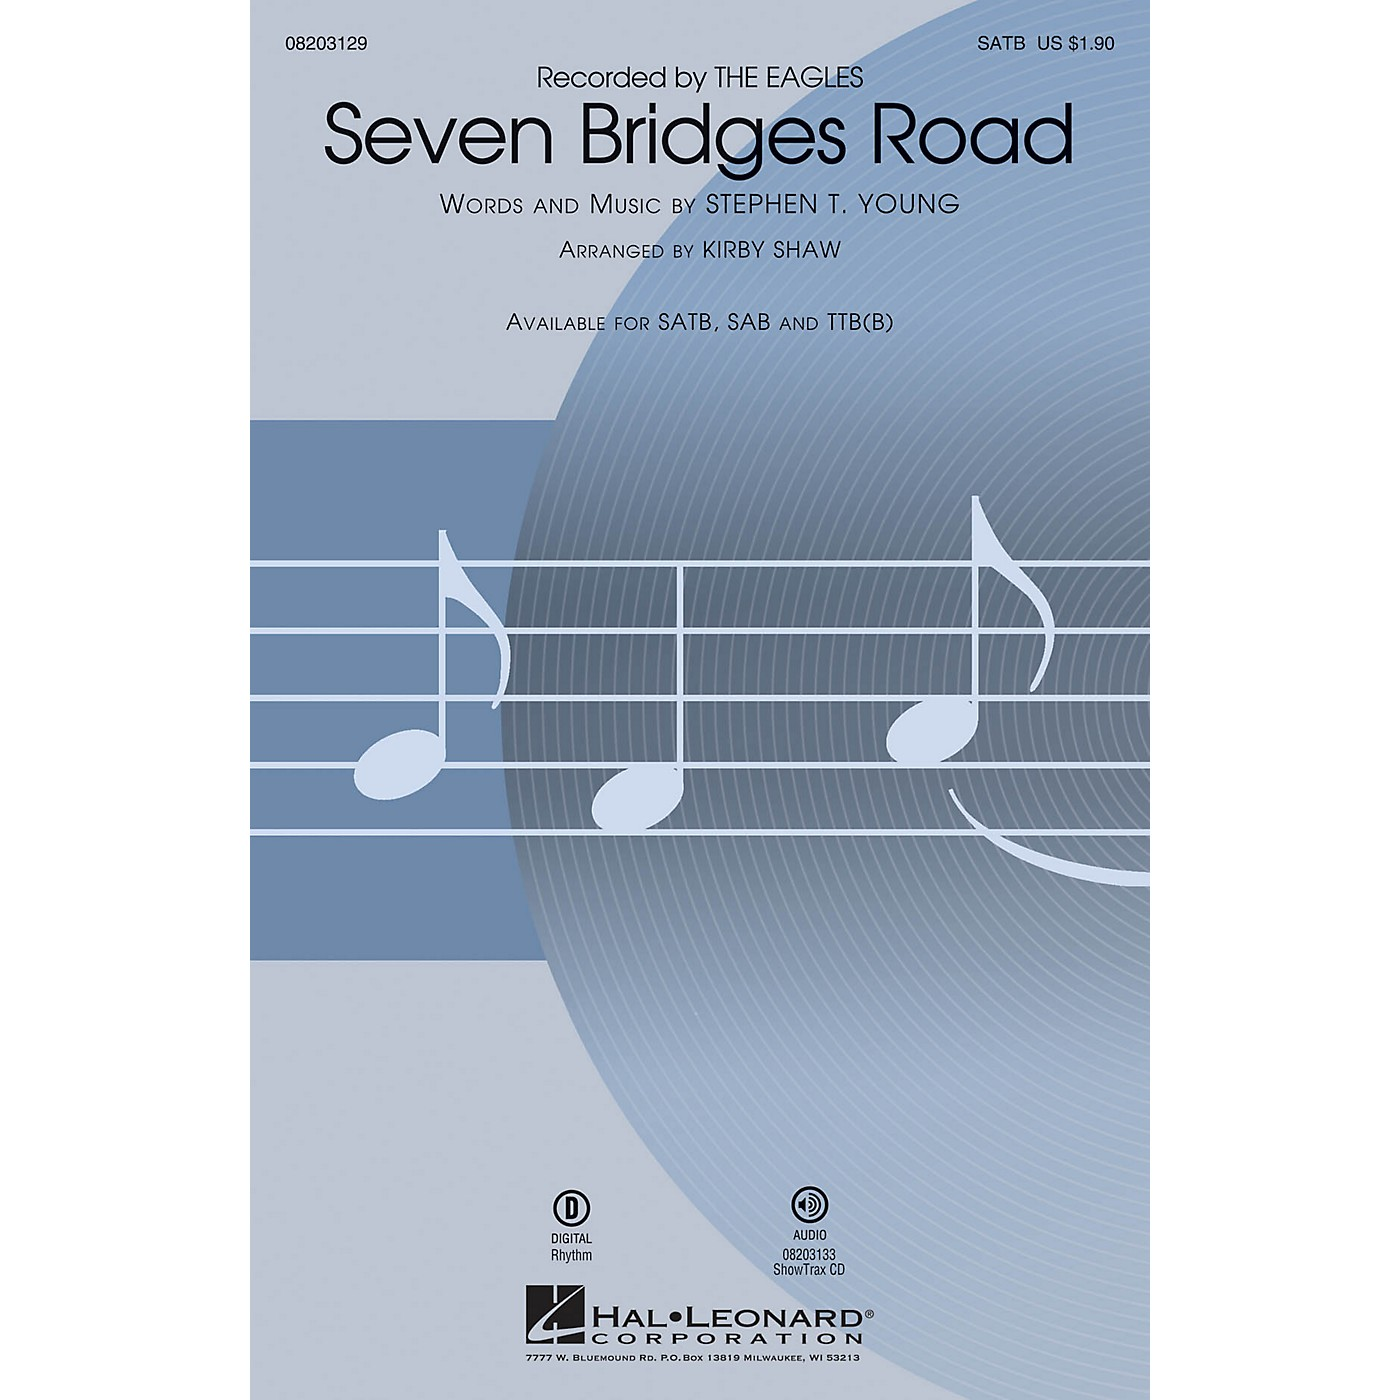 Hal Leonard Seven Bridges Road SATB by Eagles arranged by Kirby Shaw thumbnail